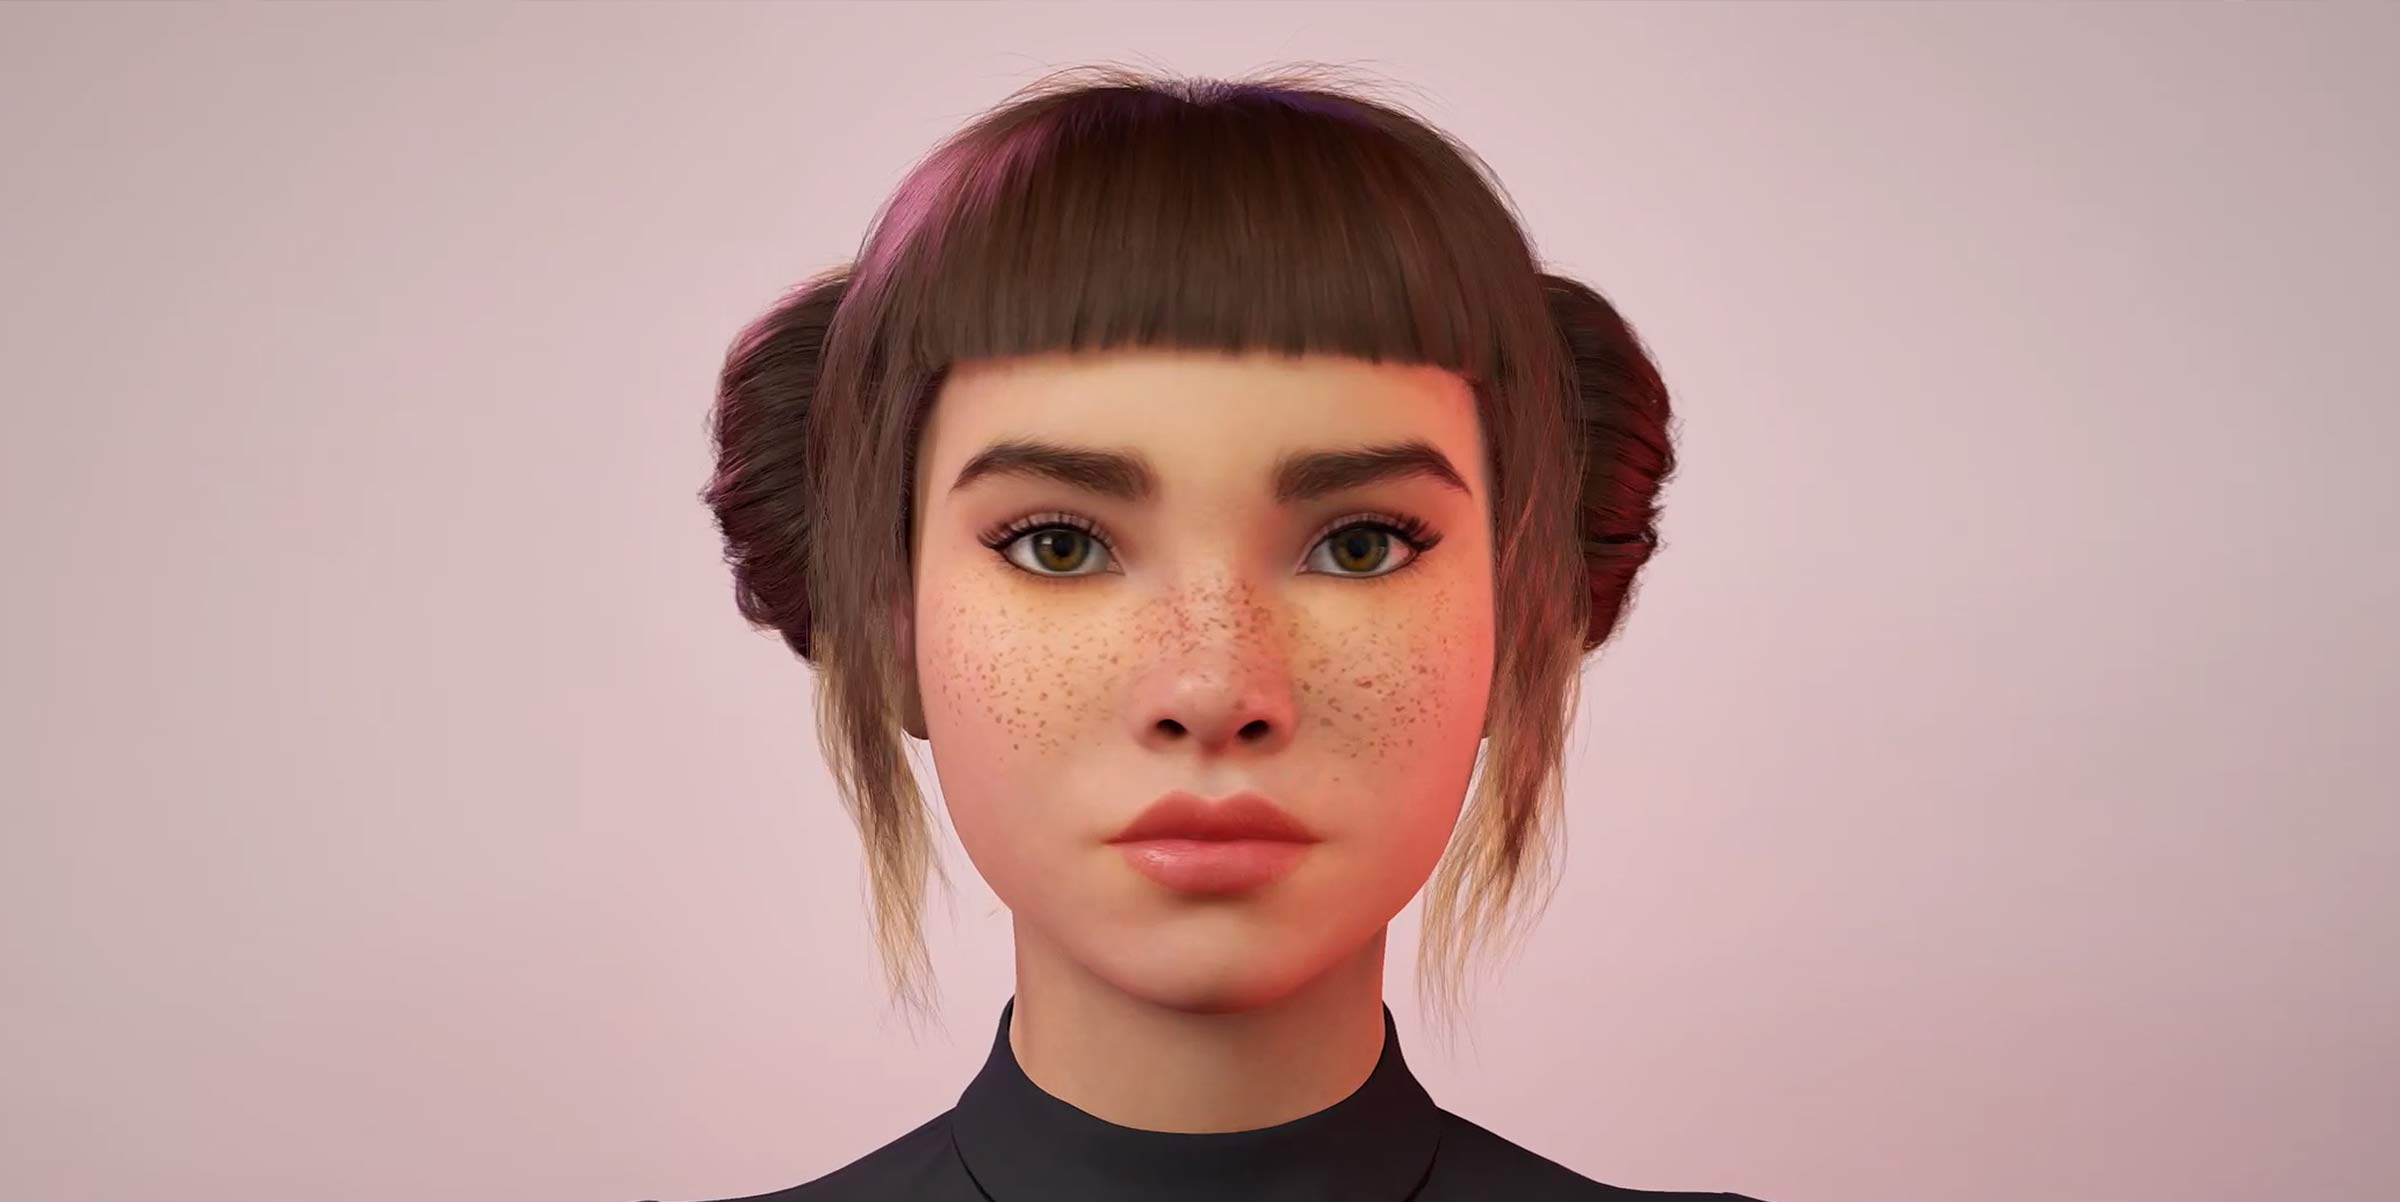 Brud, Creators of Virtual Human Lil Miquela, Announce a New Direction